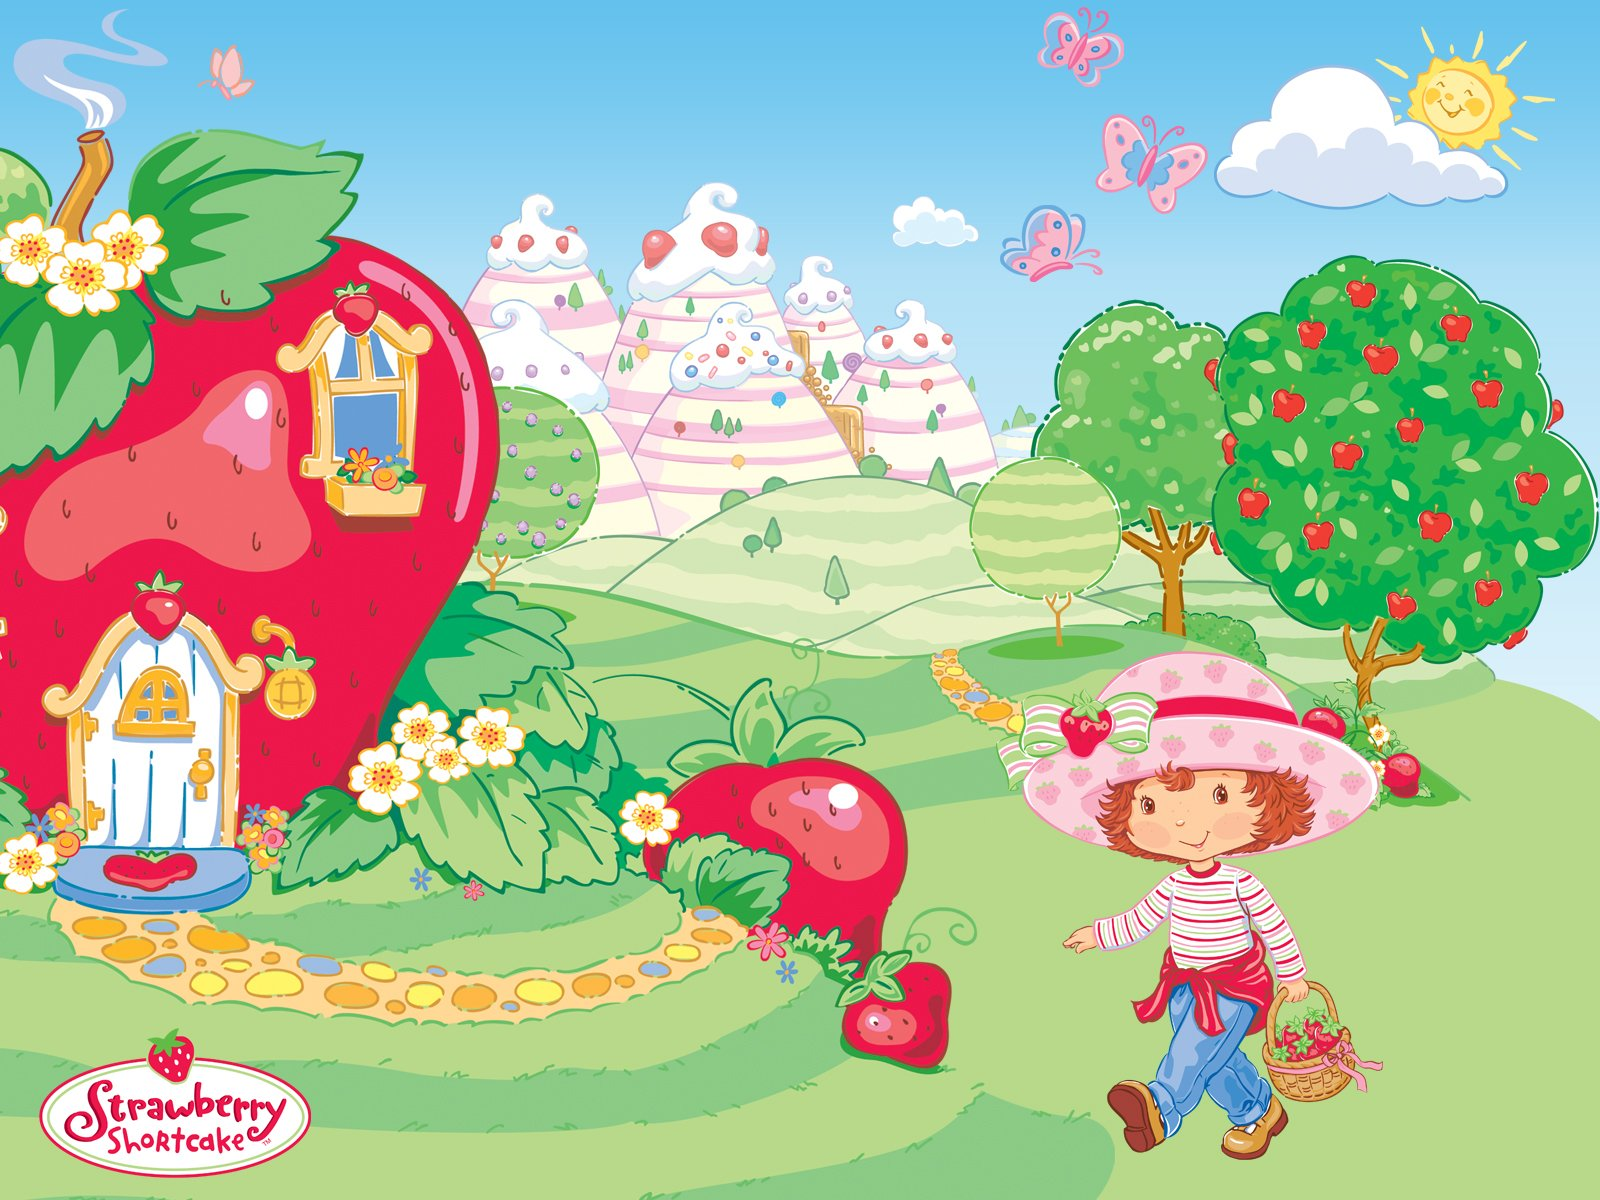 Strawberry Shortcake Desktop Wallpaper - WallpaperSafari